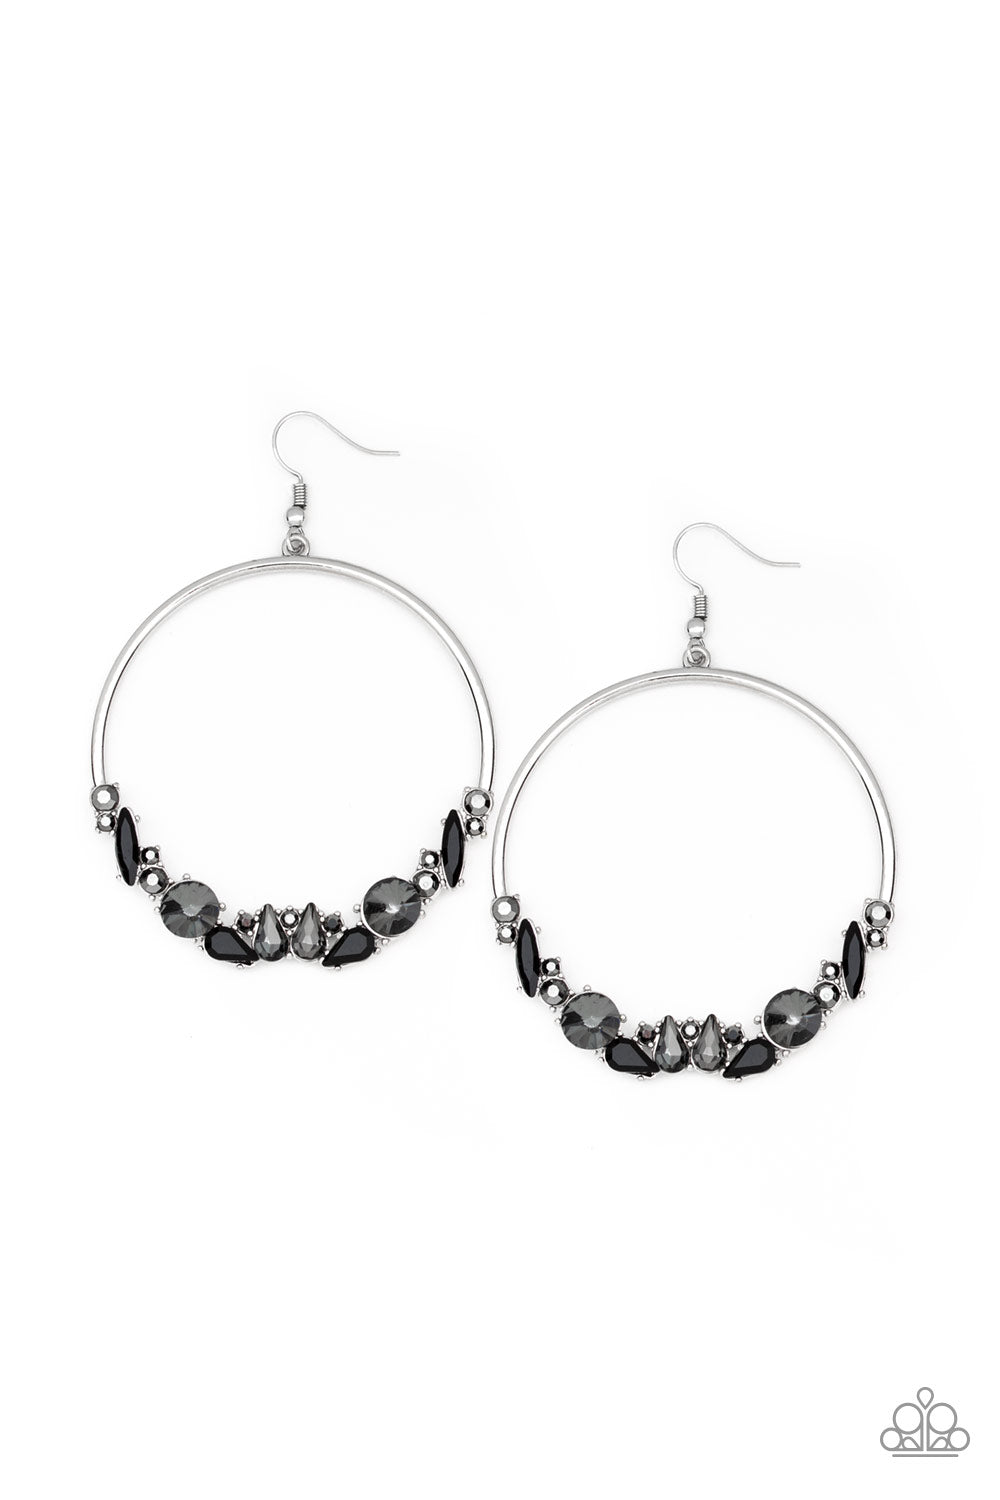 Paparazzi Earring ~ Business Casual - Multi